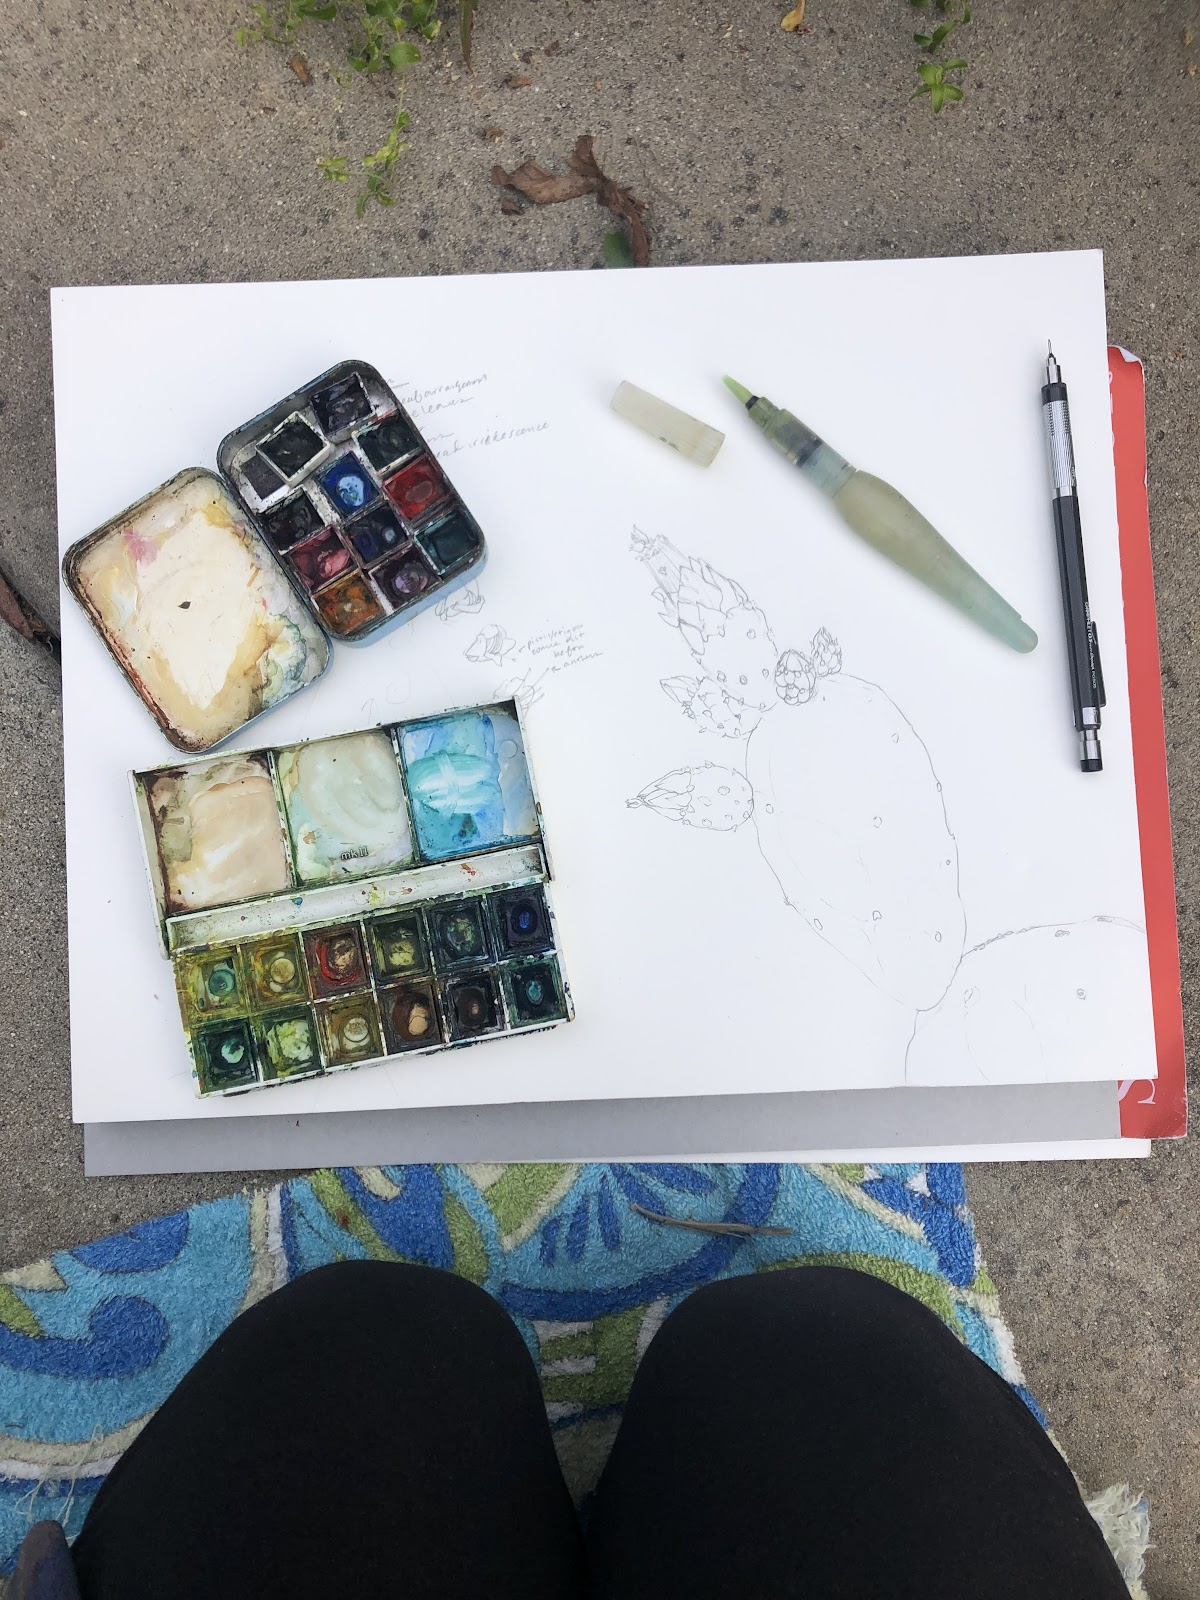 A watercoloring kit lying on the sand